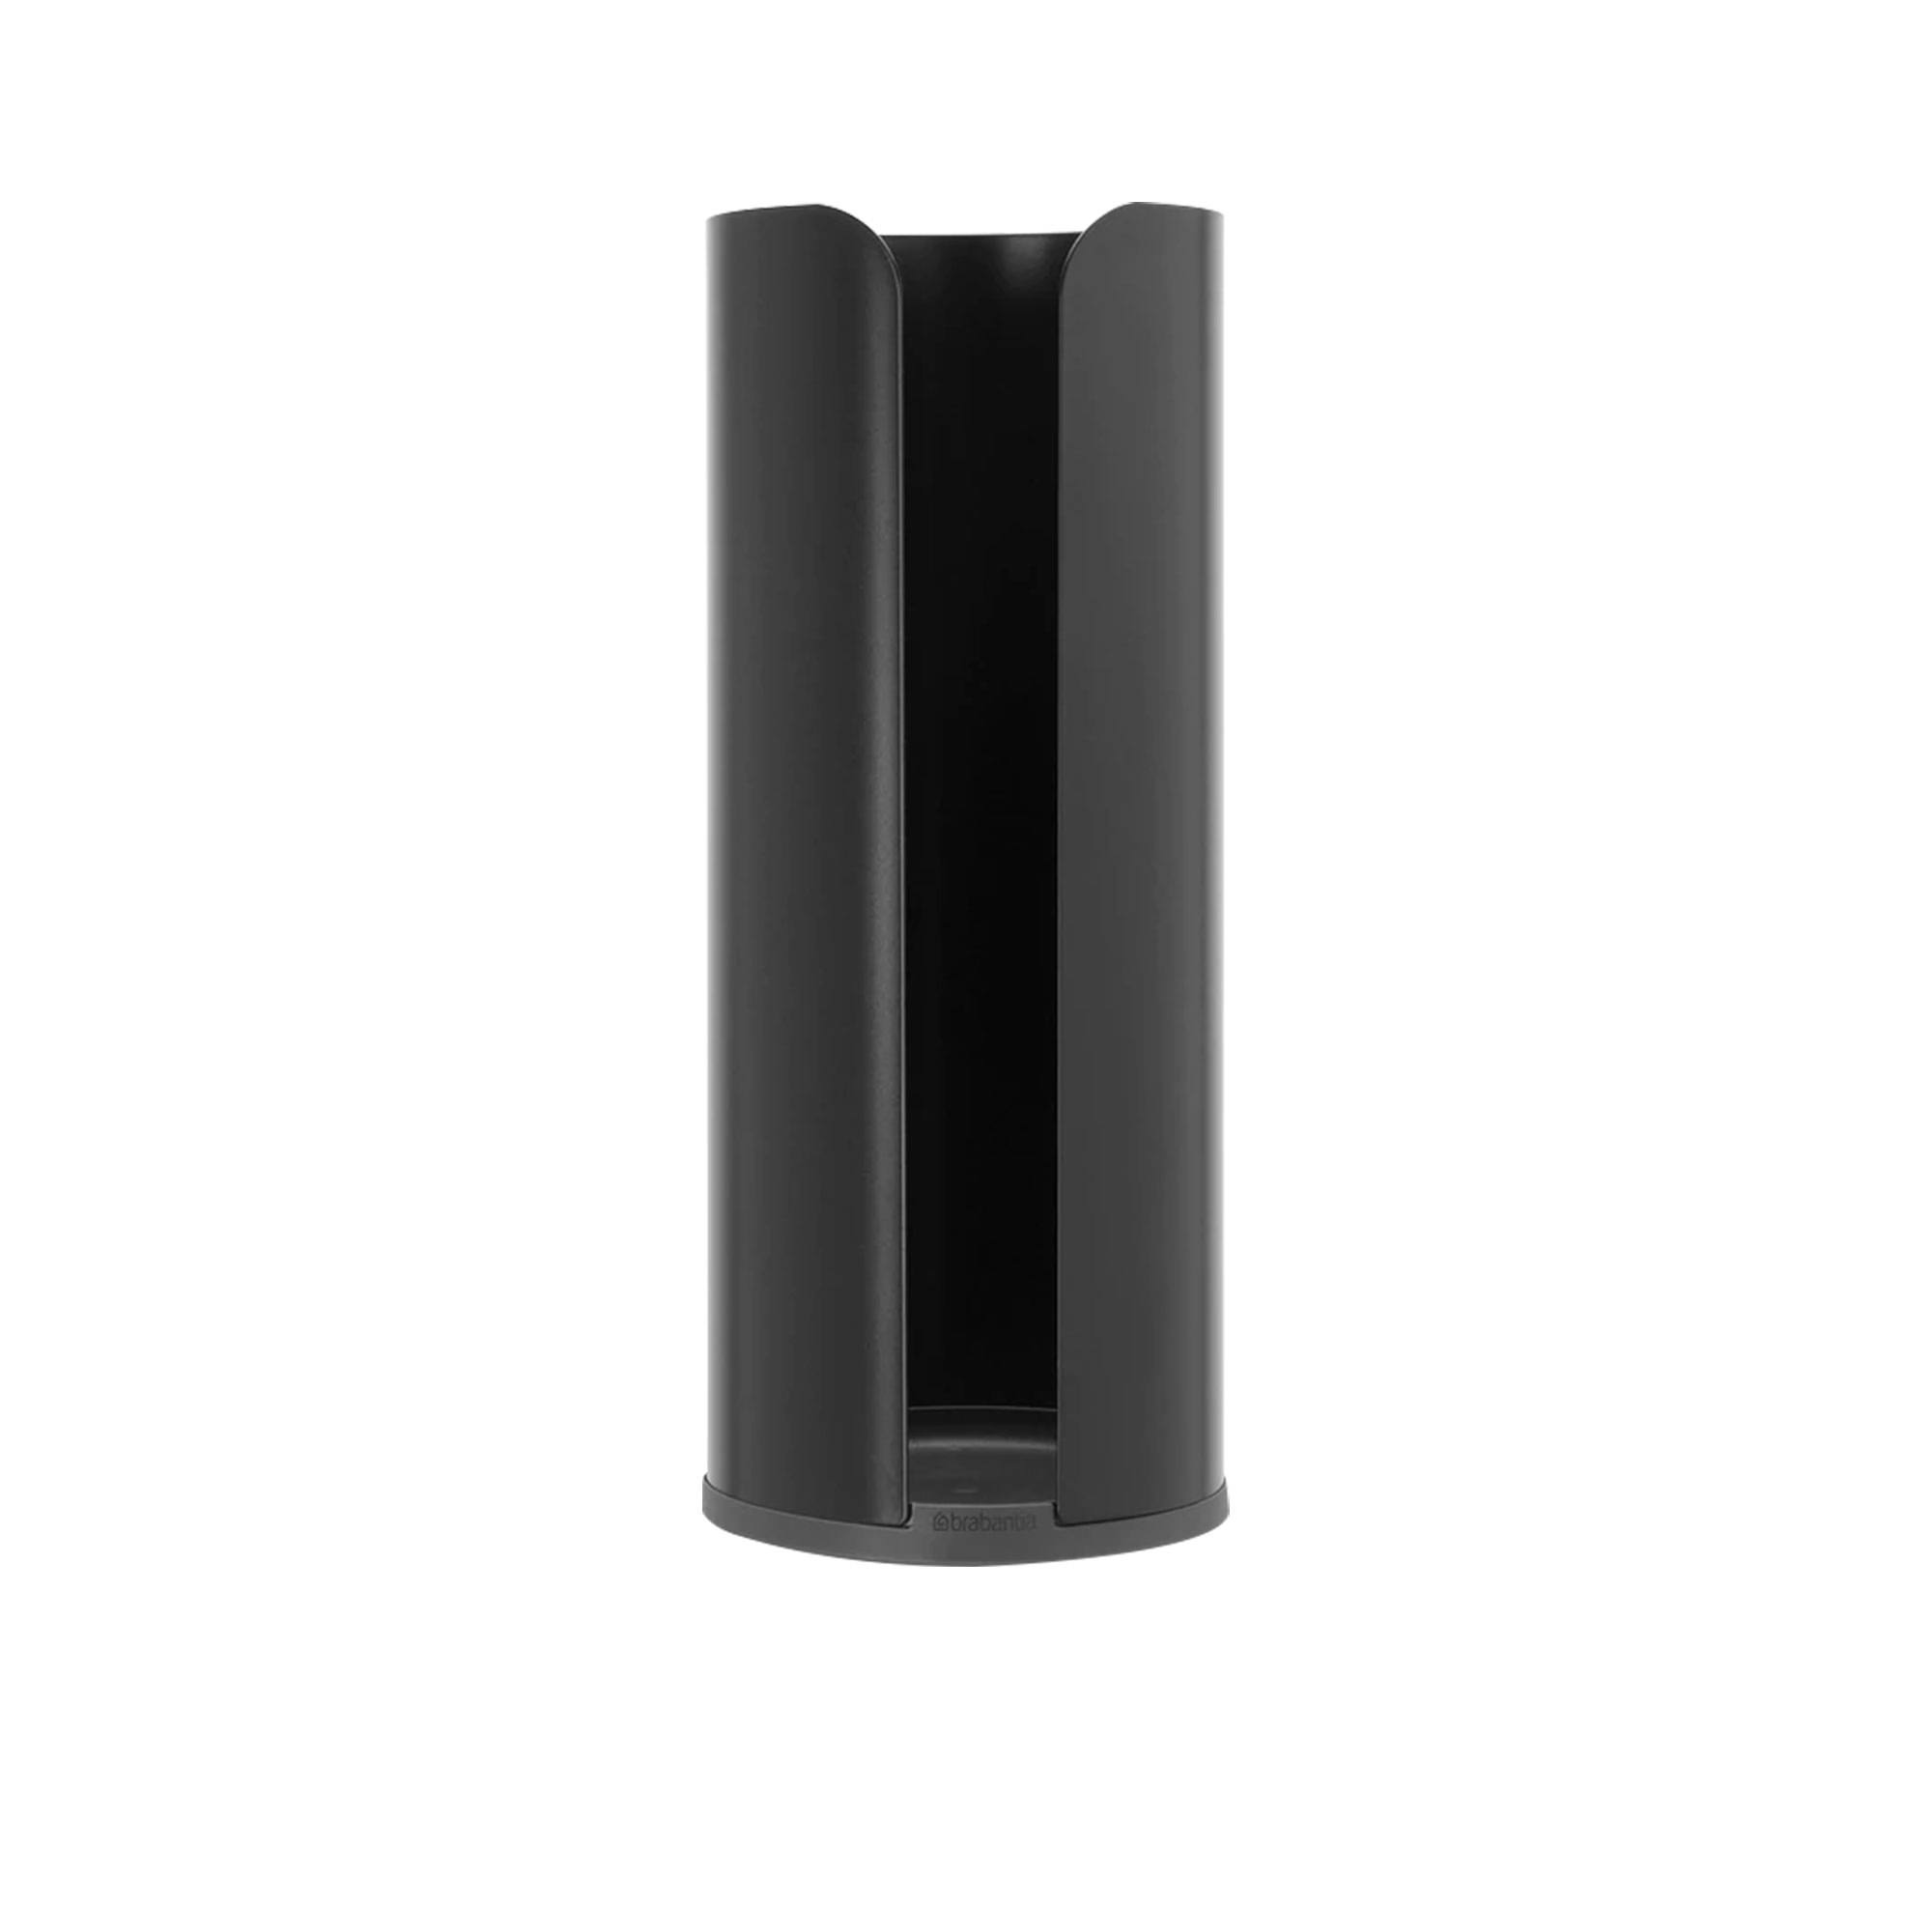 Brabantia Toilet Paper Roll Holder Black